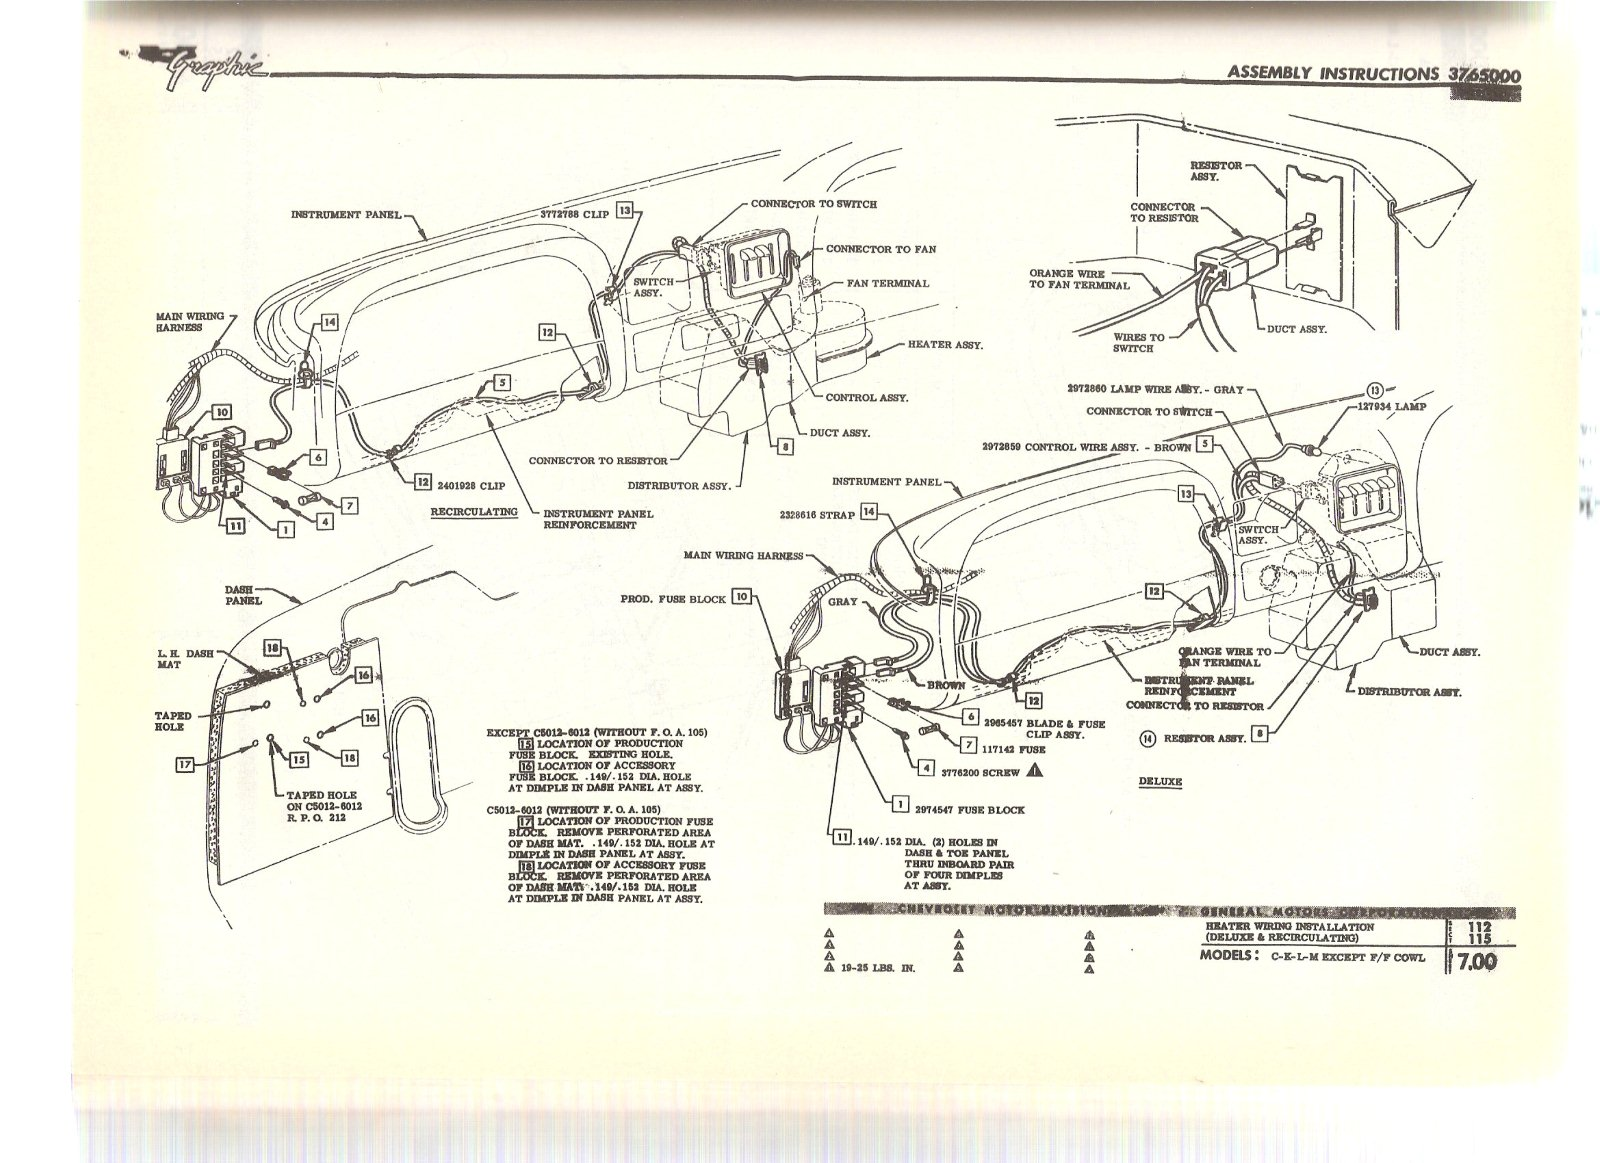 small resolution of wiring diagram also likewise also further bus 53 color as well besides 1955 thunderbird g